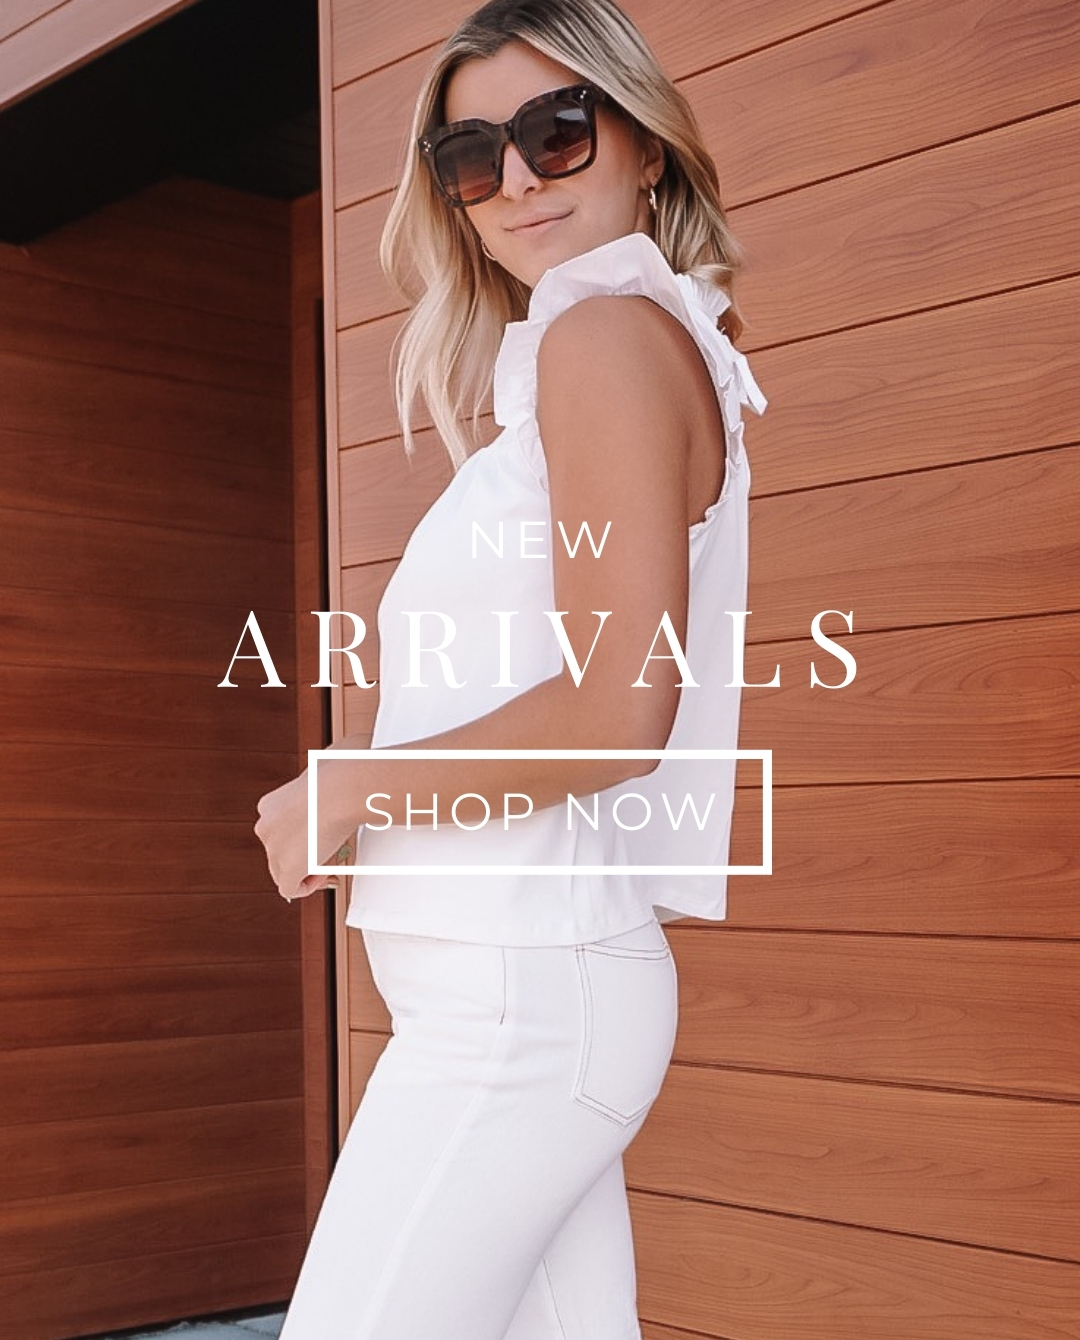 Shop New Arrivals Maxi Dresses, Sun Dresses, Skirts, Rompers, Tops, Shirts, Sweaters, Jackets, Denim, Leggings, Boots, Sandals, Jewelry, Handbags, Accessories